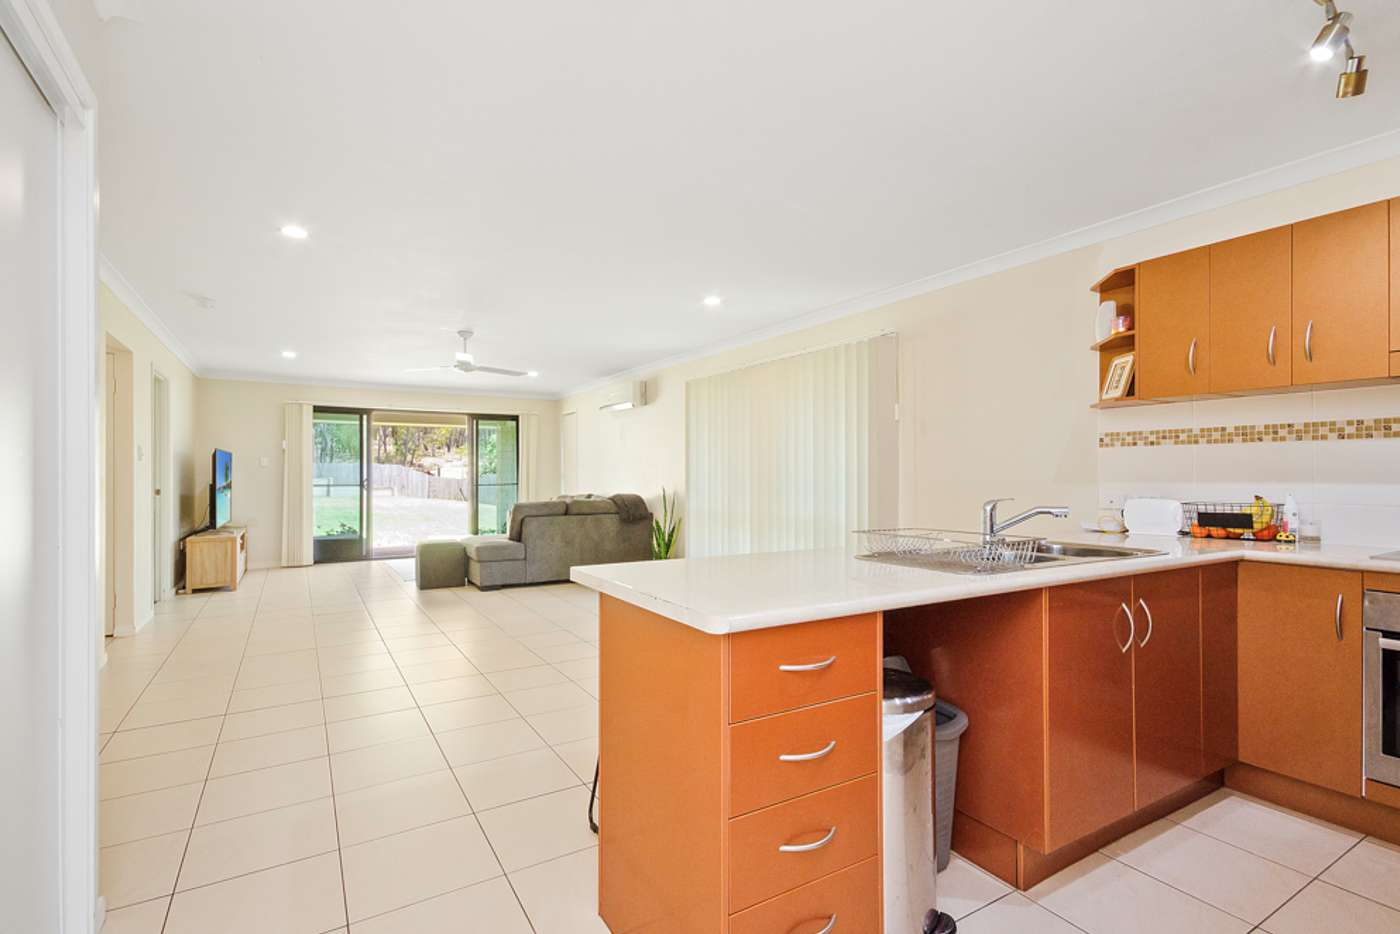 Sixth view of Homely house listing, 12 Markowitz Place, Kirkwood QLD 4680